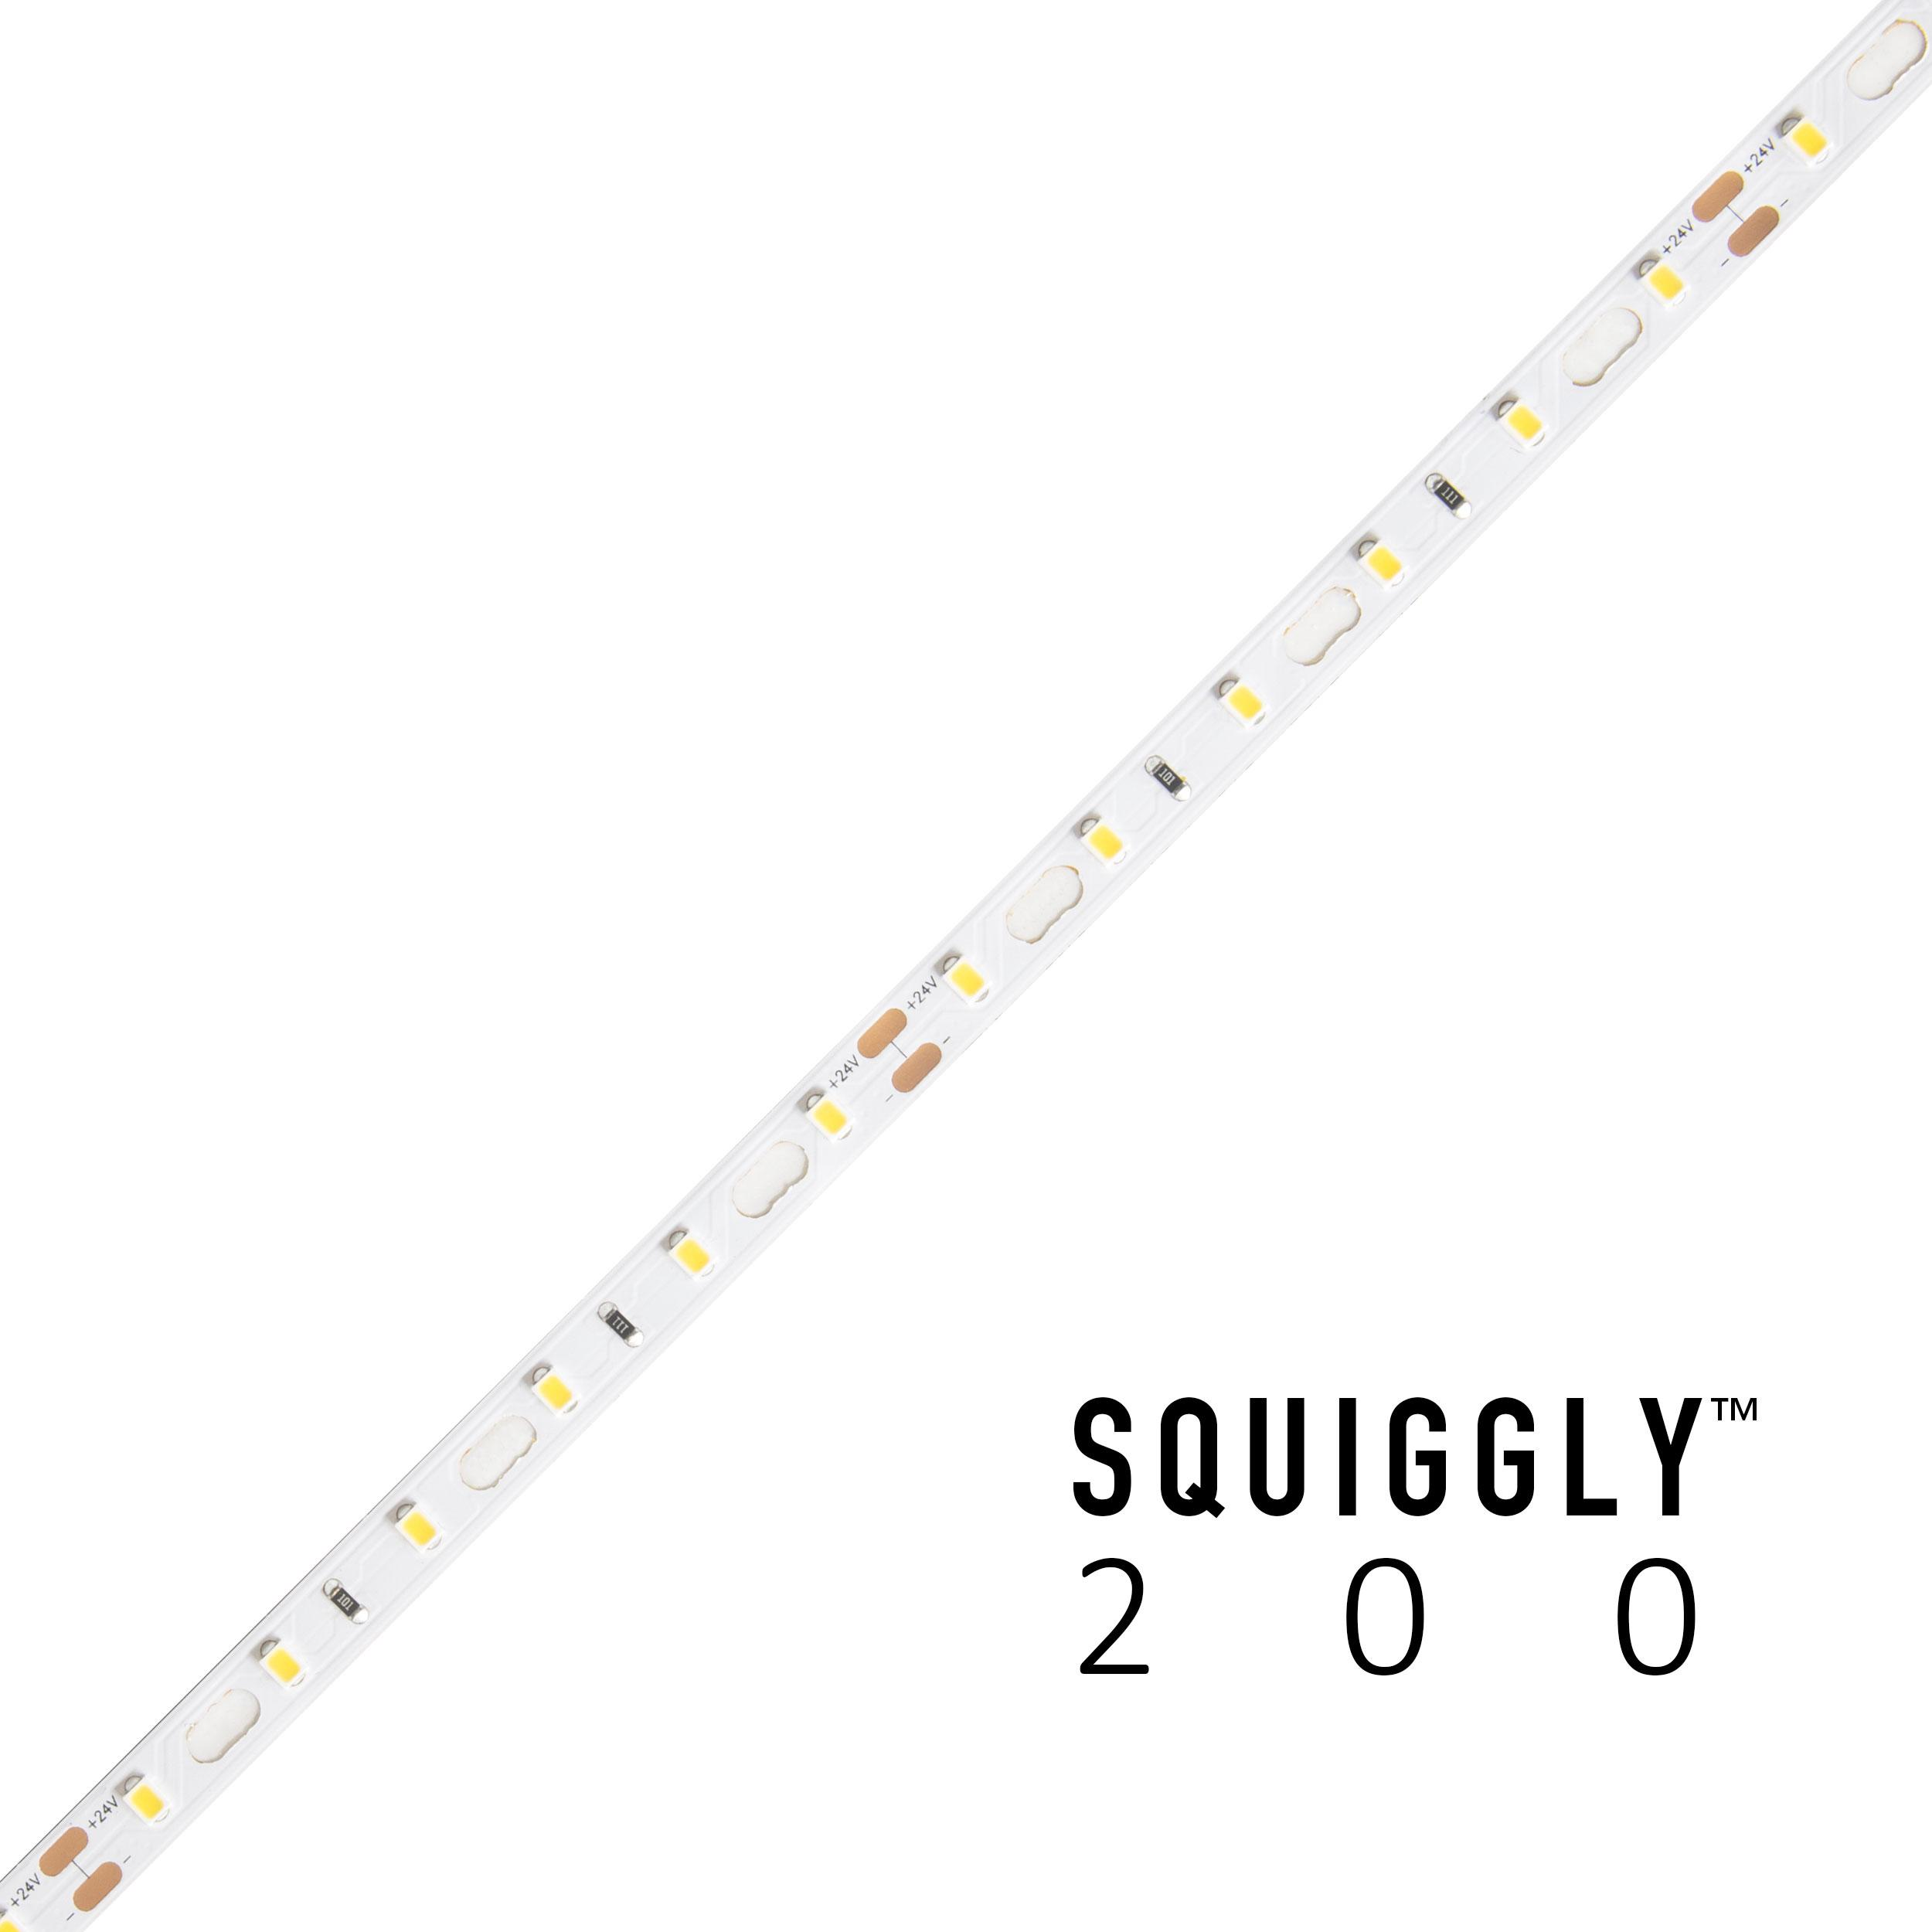 SQUIGGLY 200